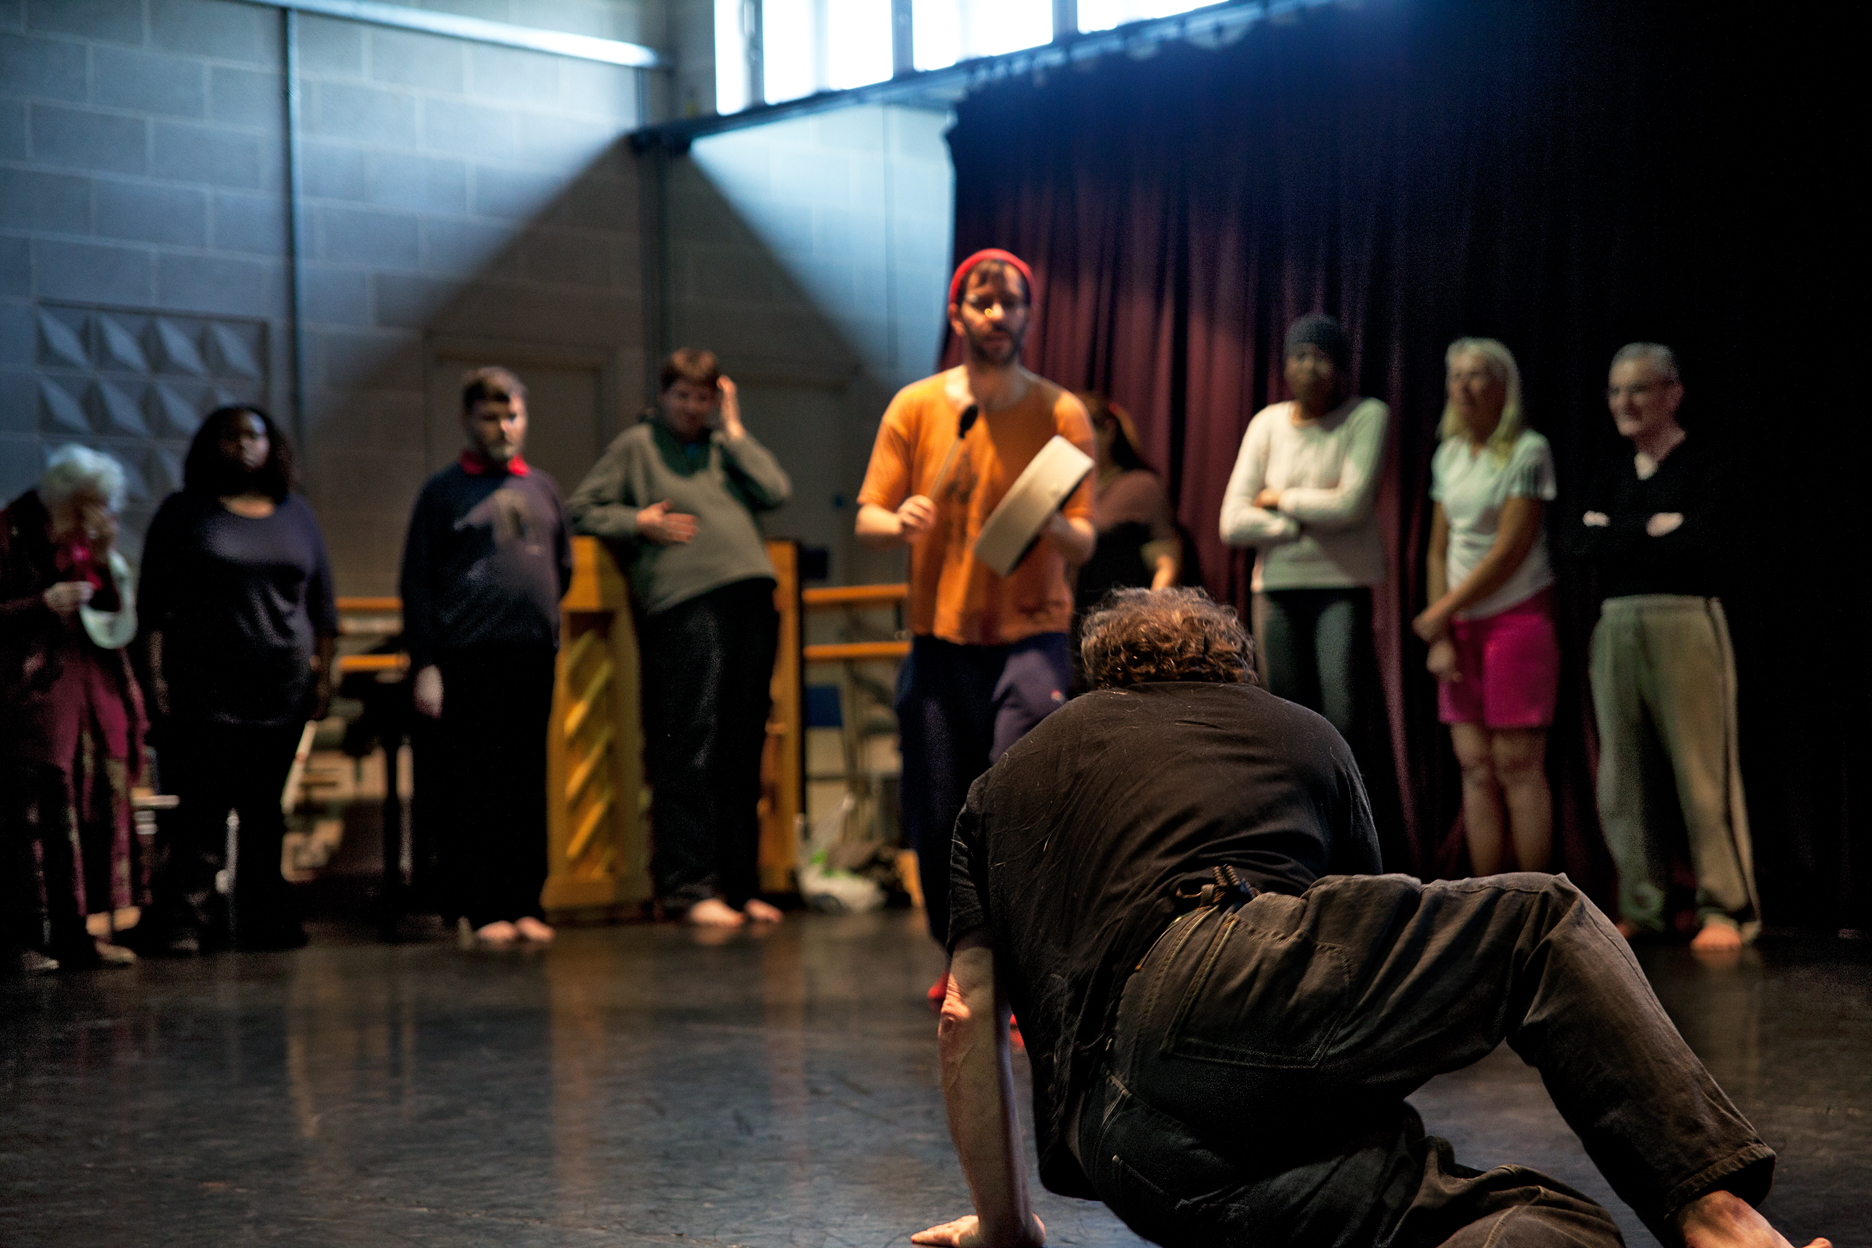 A group of people standing in a circle in a rehearsal room. Foreground, a man crouching on the ground with his back to the camera, facing the other participants.